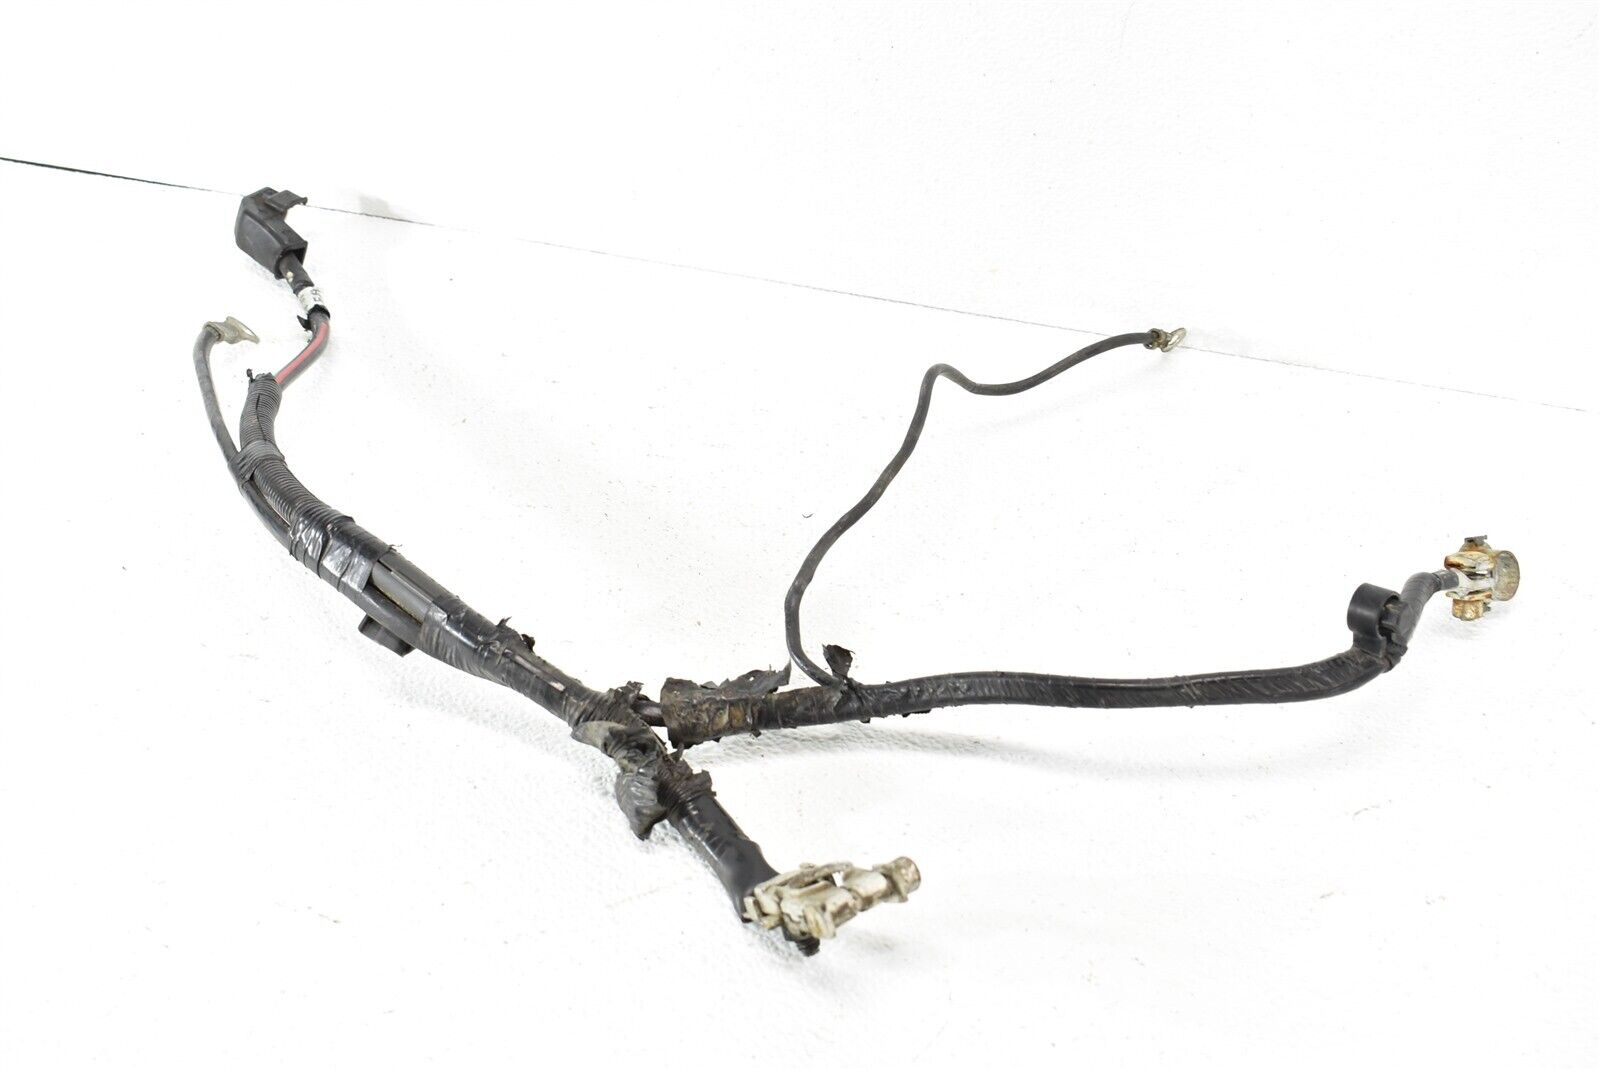 2009-2013 Subaru Forester XT Starter Harness Wiring Wires